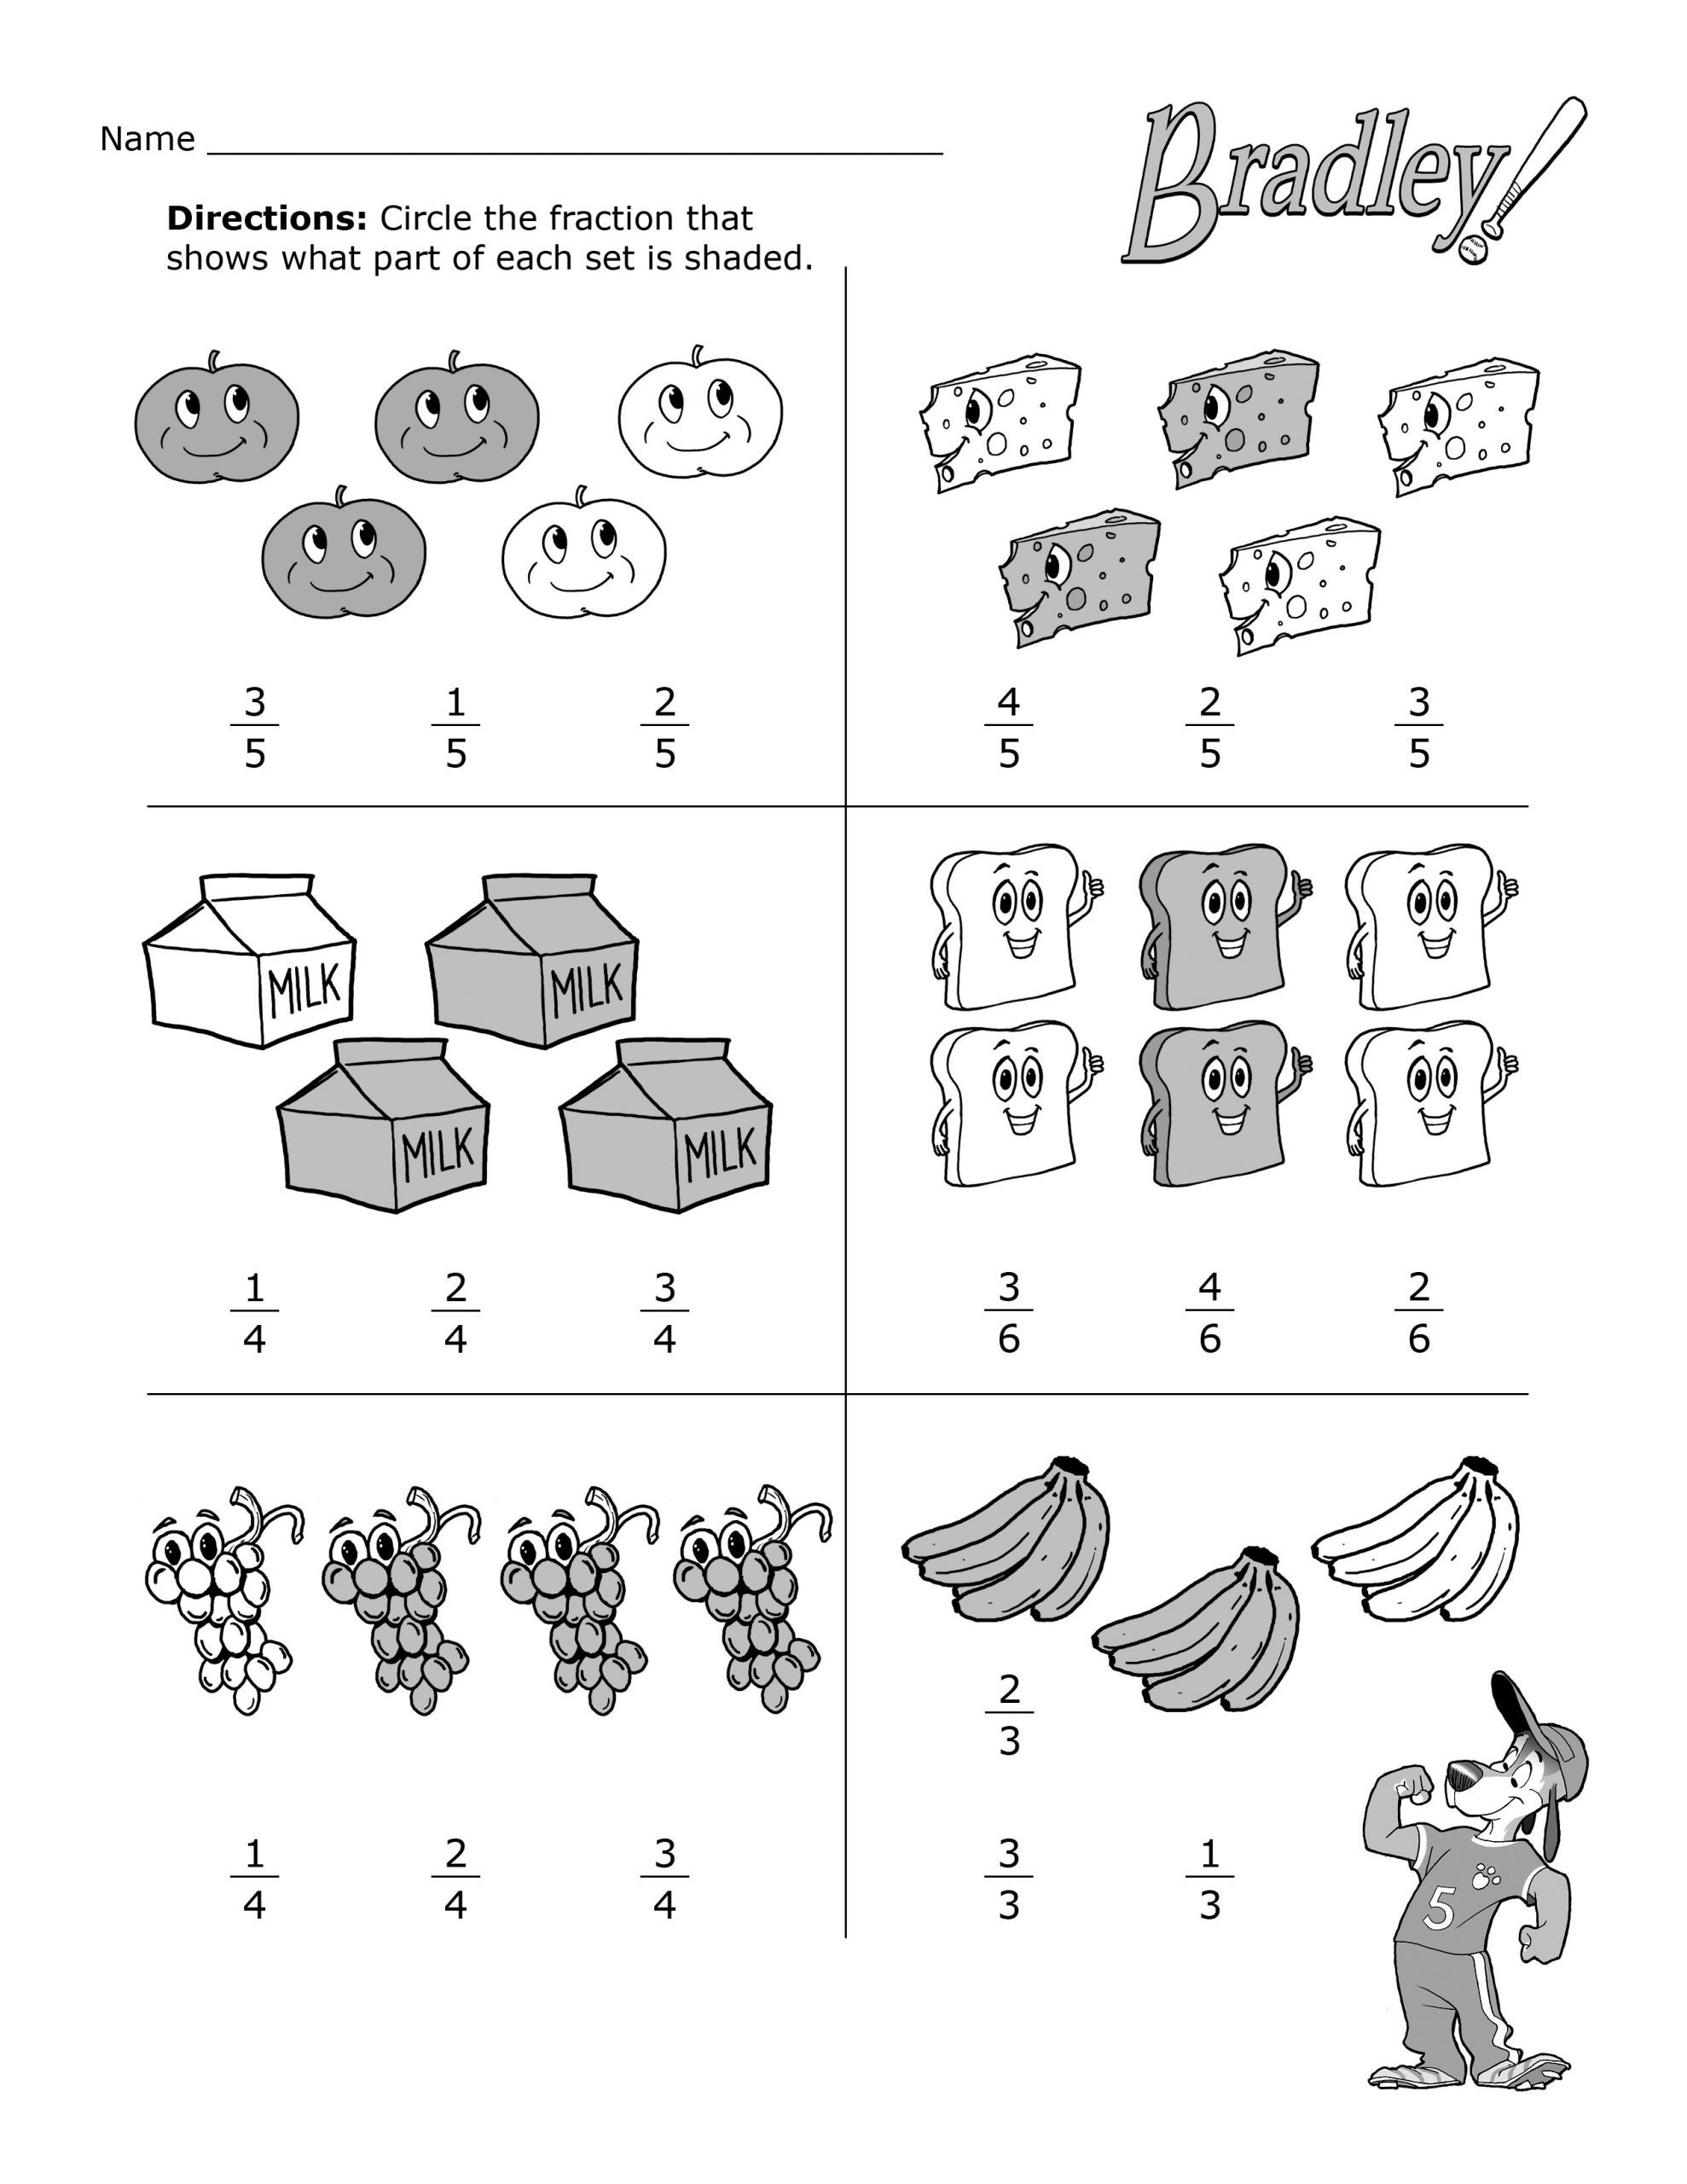 fun with fractions practice worksheet remarkableh sheets for 5th grade picture ideas worksheets mon core scaled